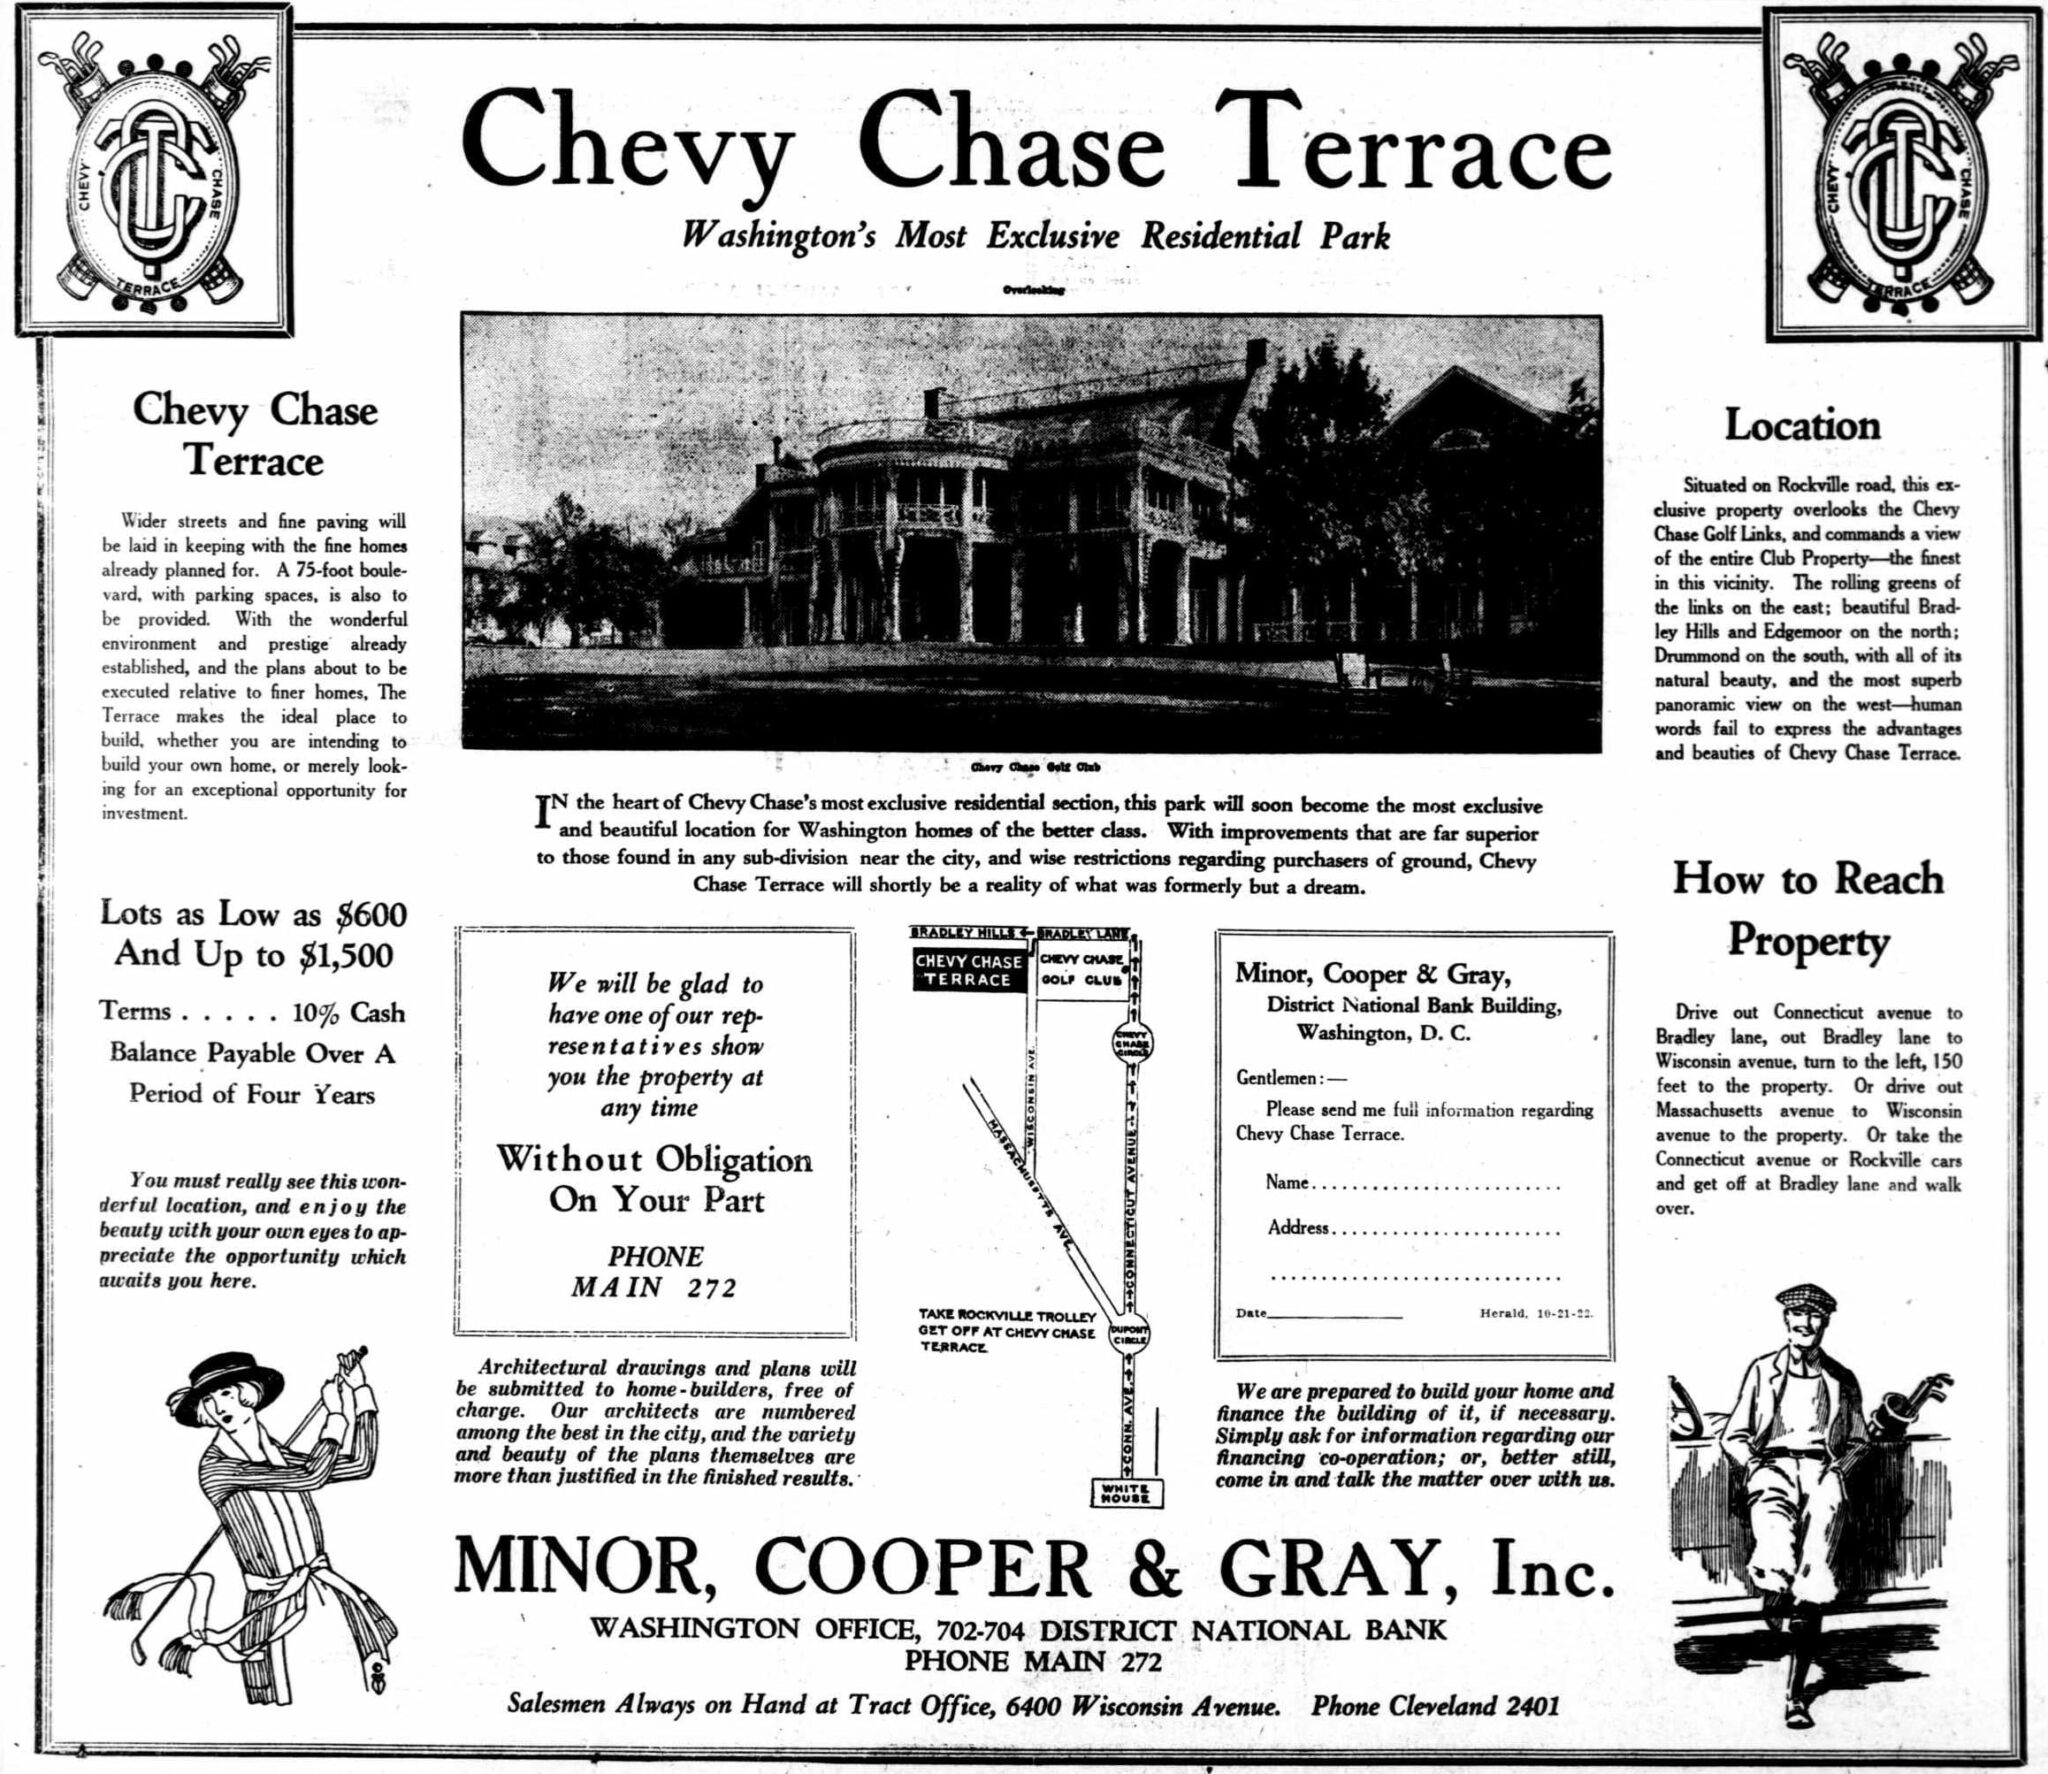 Chevy Chase Terrace: Washington's Most Exclusive